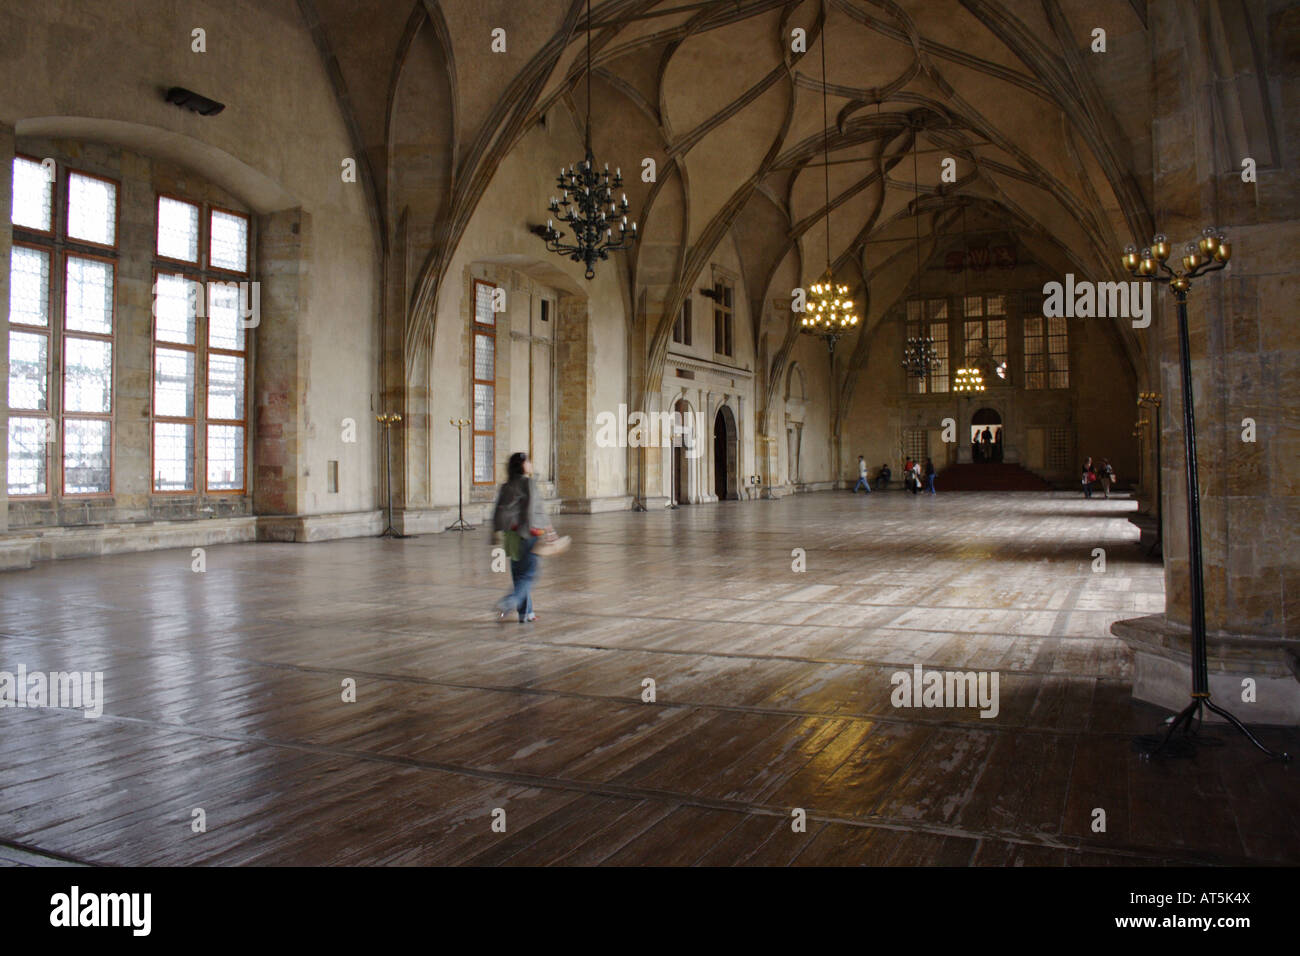 Medieval prague castle interior large hall floor stock for Hall interior images